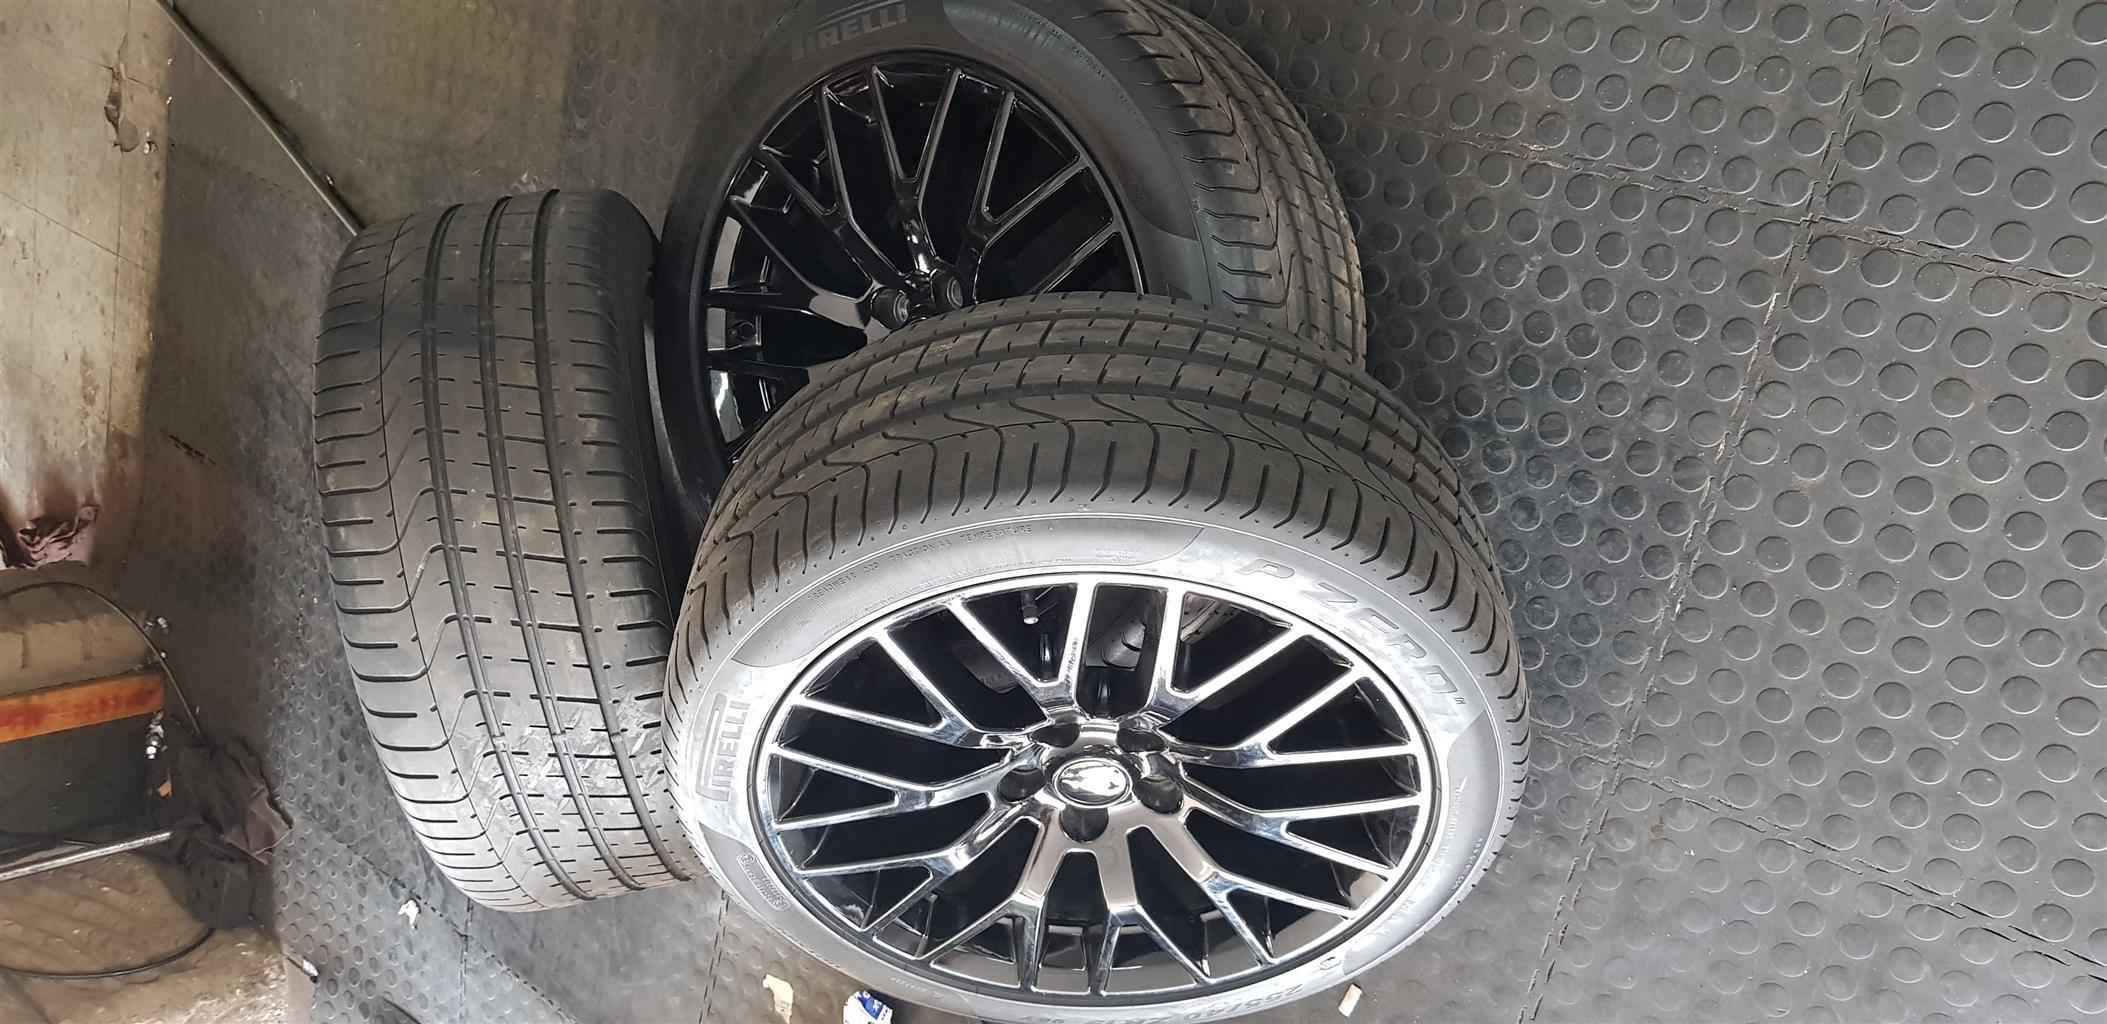 Ford mustang mags and tires